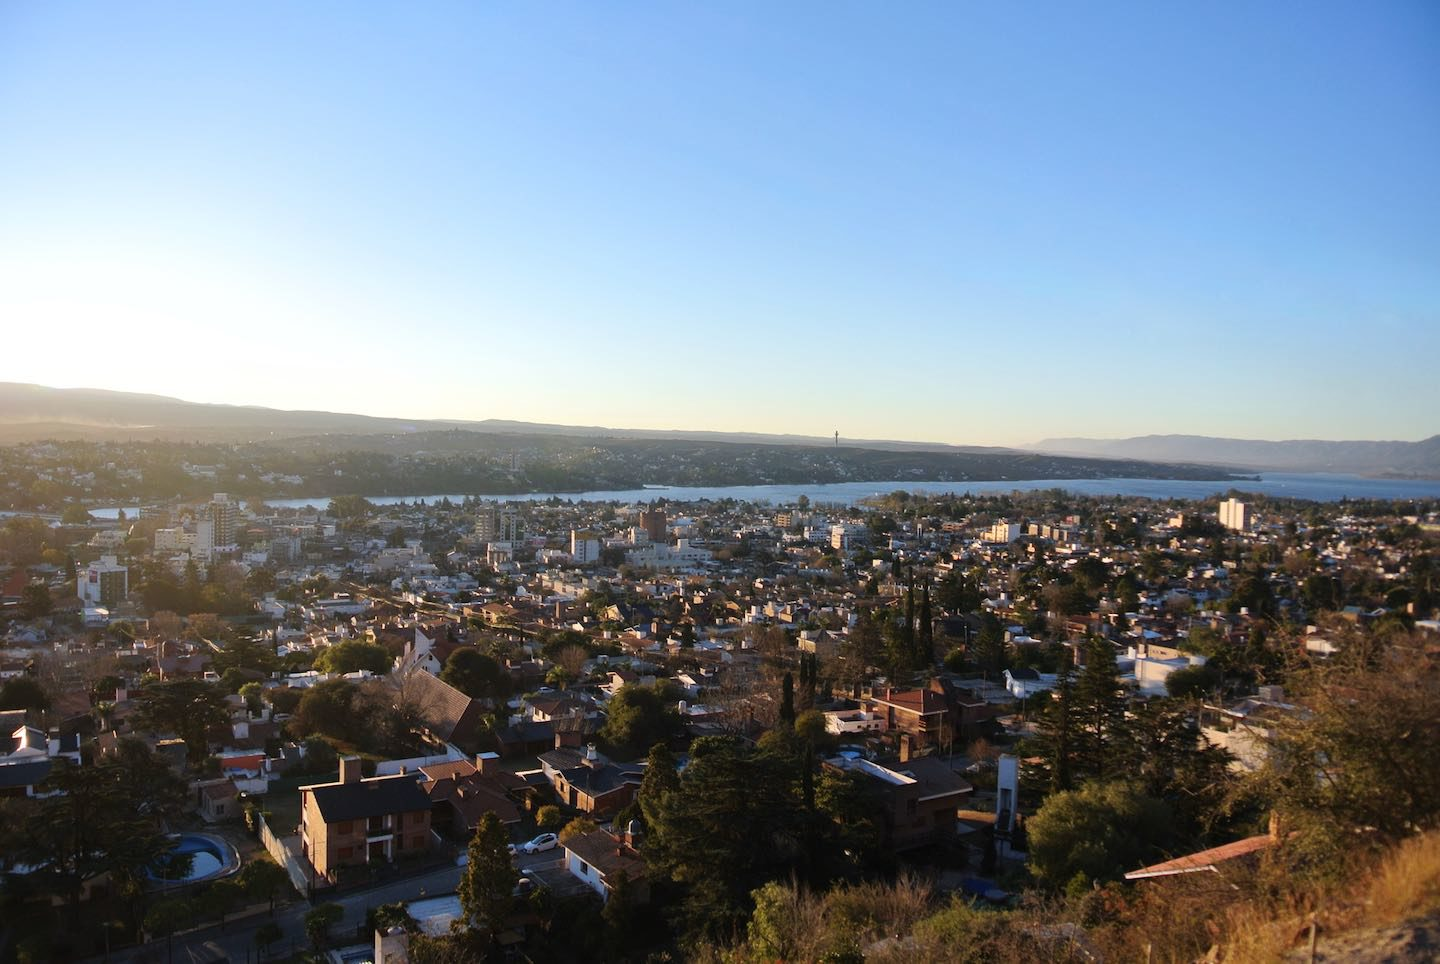 Panoramic view of Villa Carlos Paz at the sunset from the high grounds in the city.